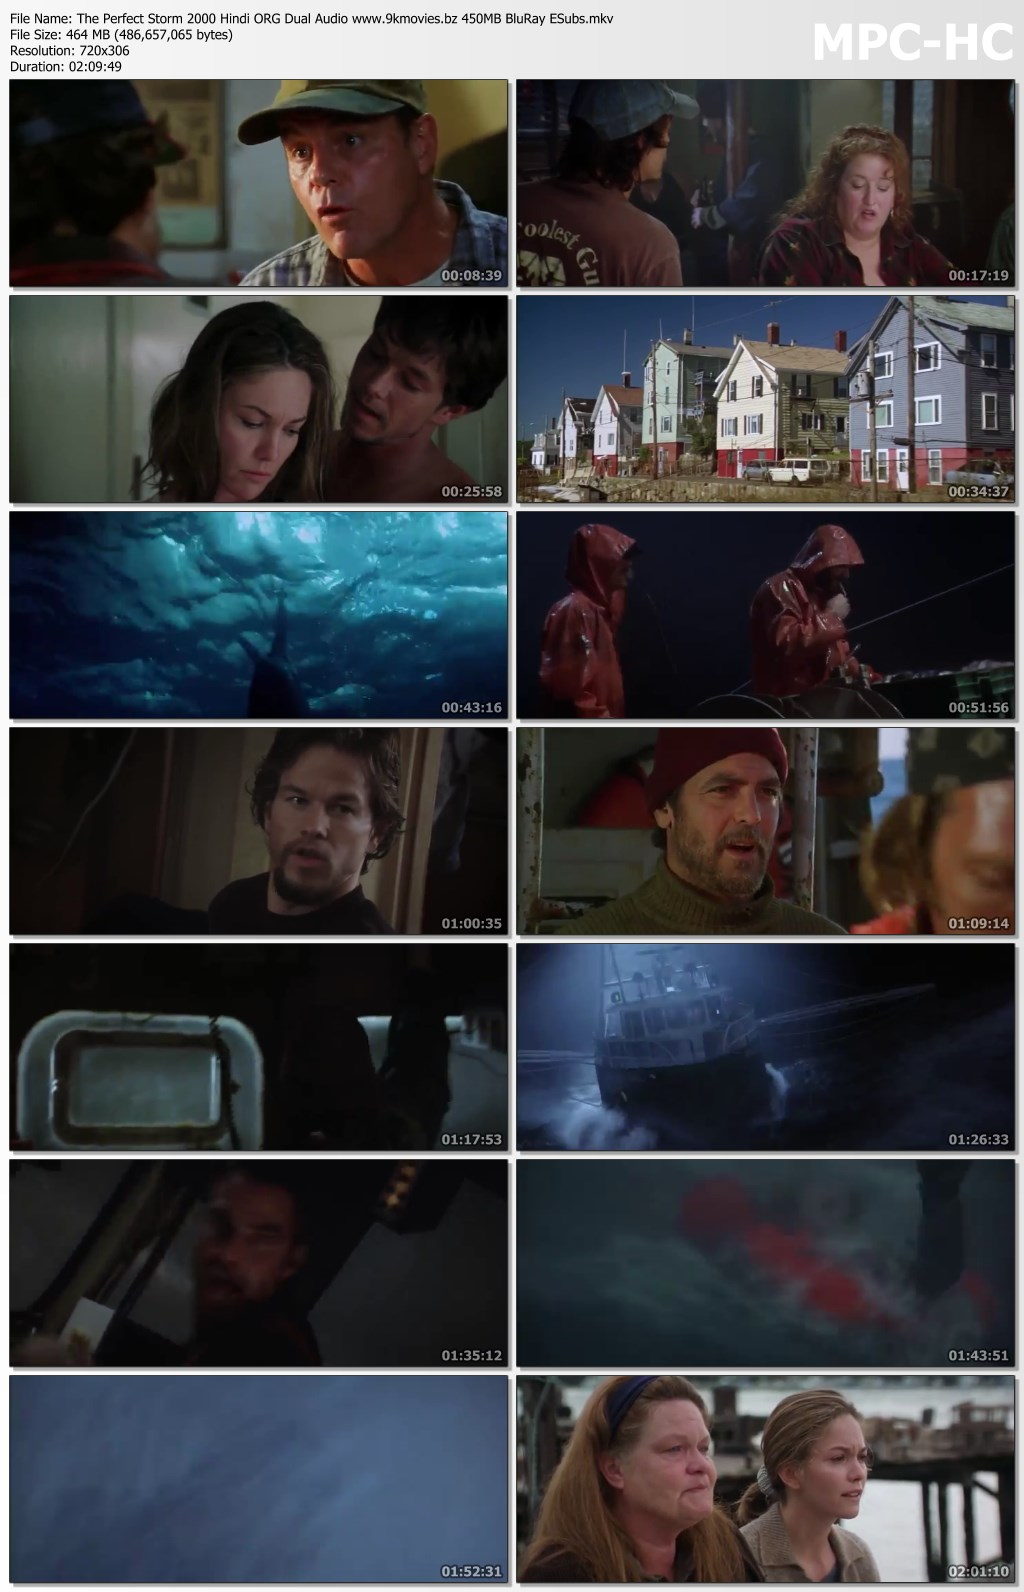 The Perfect Storm 2000 Hindi Dual Audio 450mb Bluray Esubs Download Extramovies Extra Movies Extramovie 720p Movies 1080p Movies 1gb Movies 700mb Movies Extramovies Extra Movies Extramovie